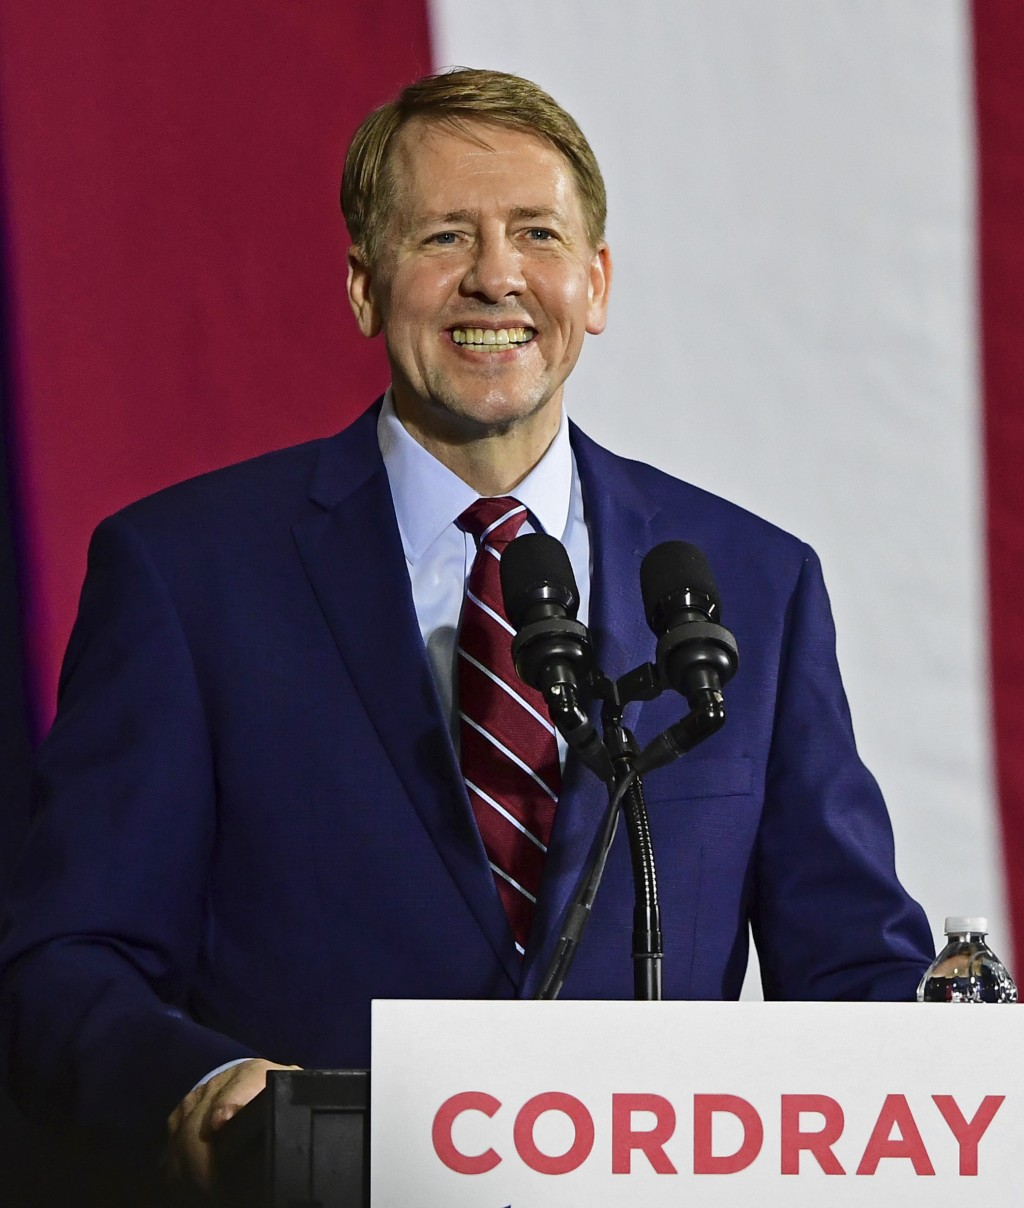 Democratic gubernatorial candidate Richard Cordray speaks at a campaign rally, Thursday, Sept. 13, 2018, in Cleveland. (AP Photo/David Dermer)